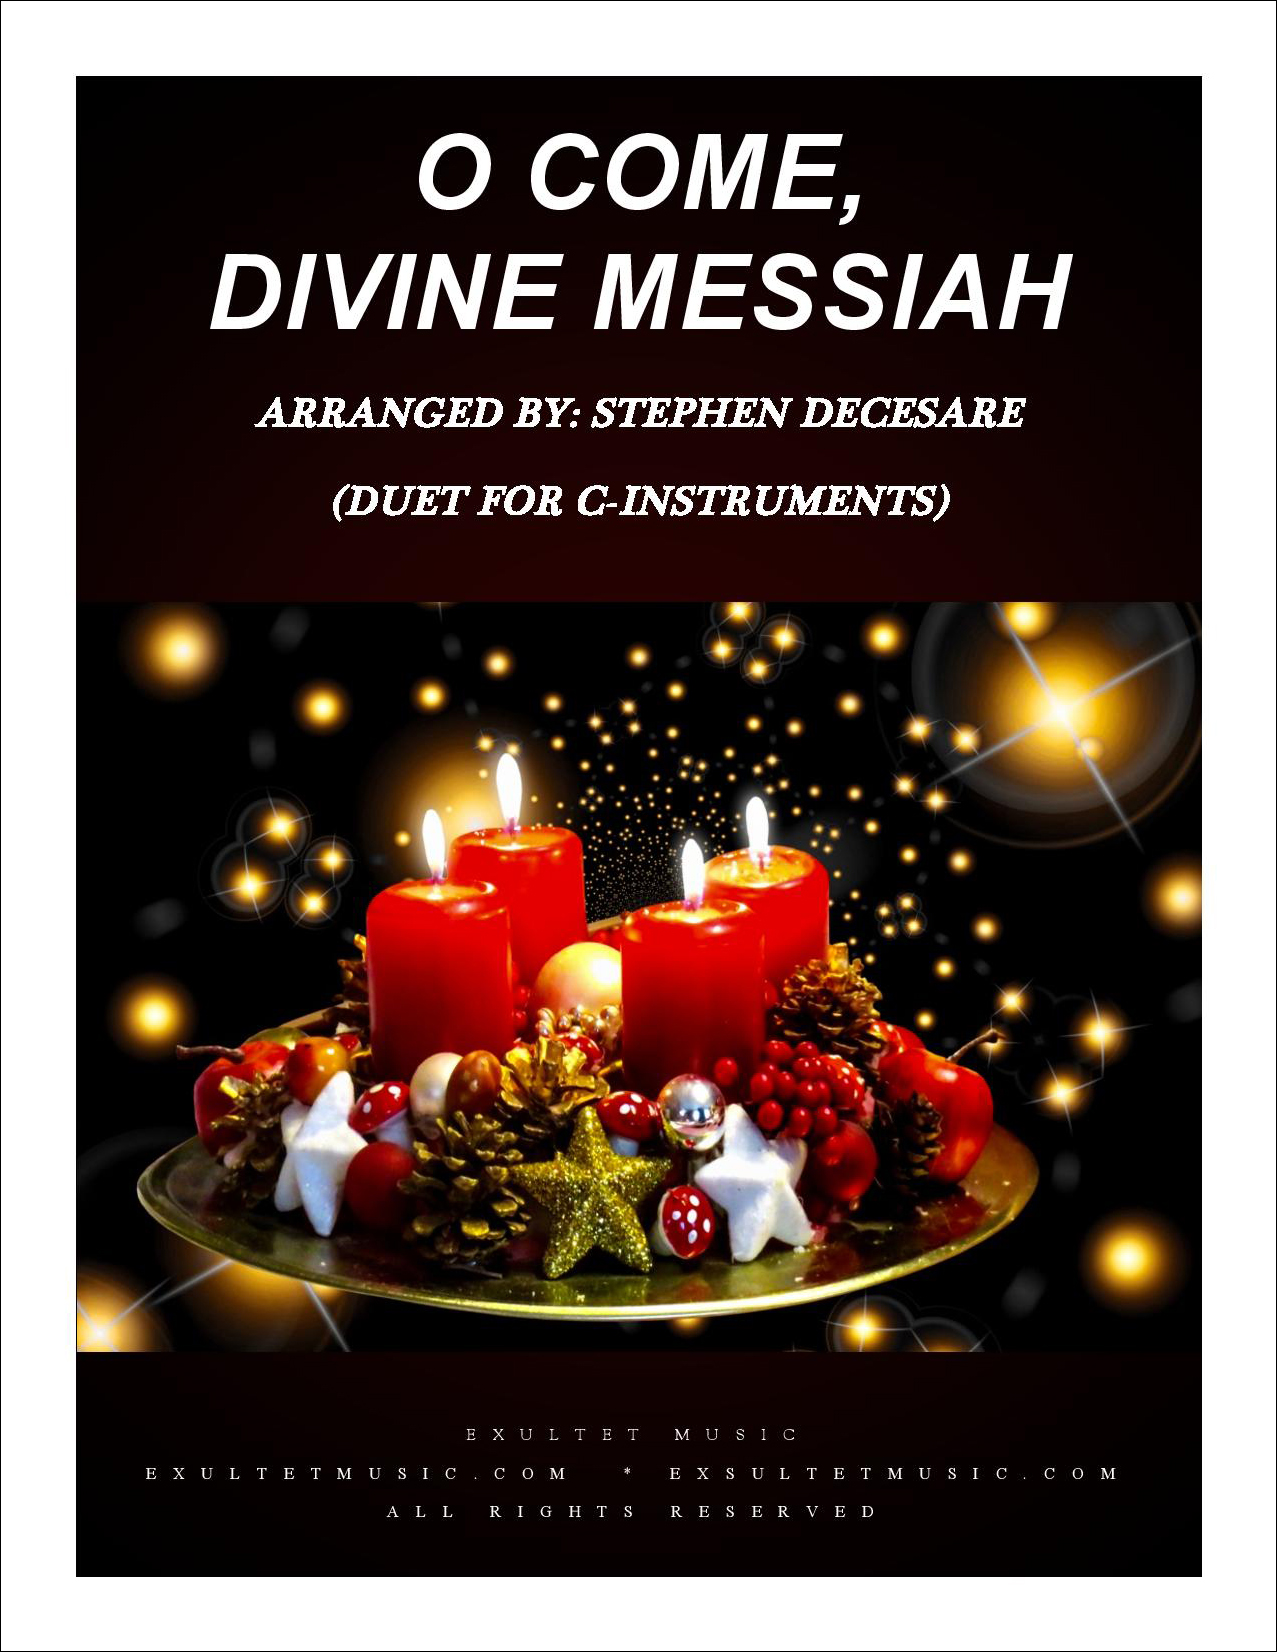 O Come, Divine Messiah